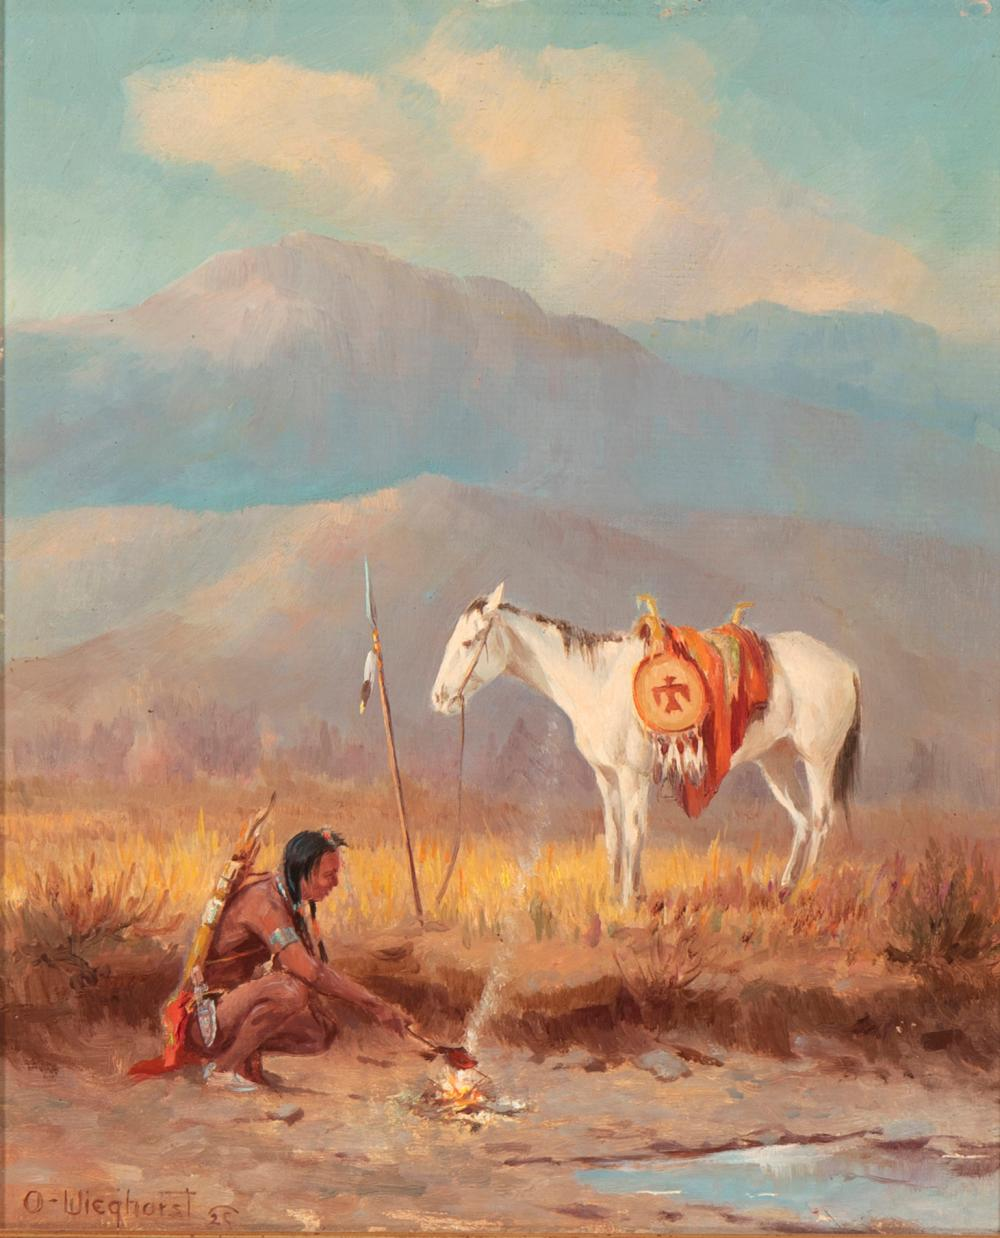 Olaf Wieghorst, (1899-1988, El Cajon, CA), Indian and horse, Oil on burlap laid to artist masonite, 12.5